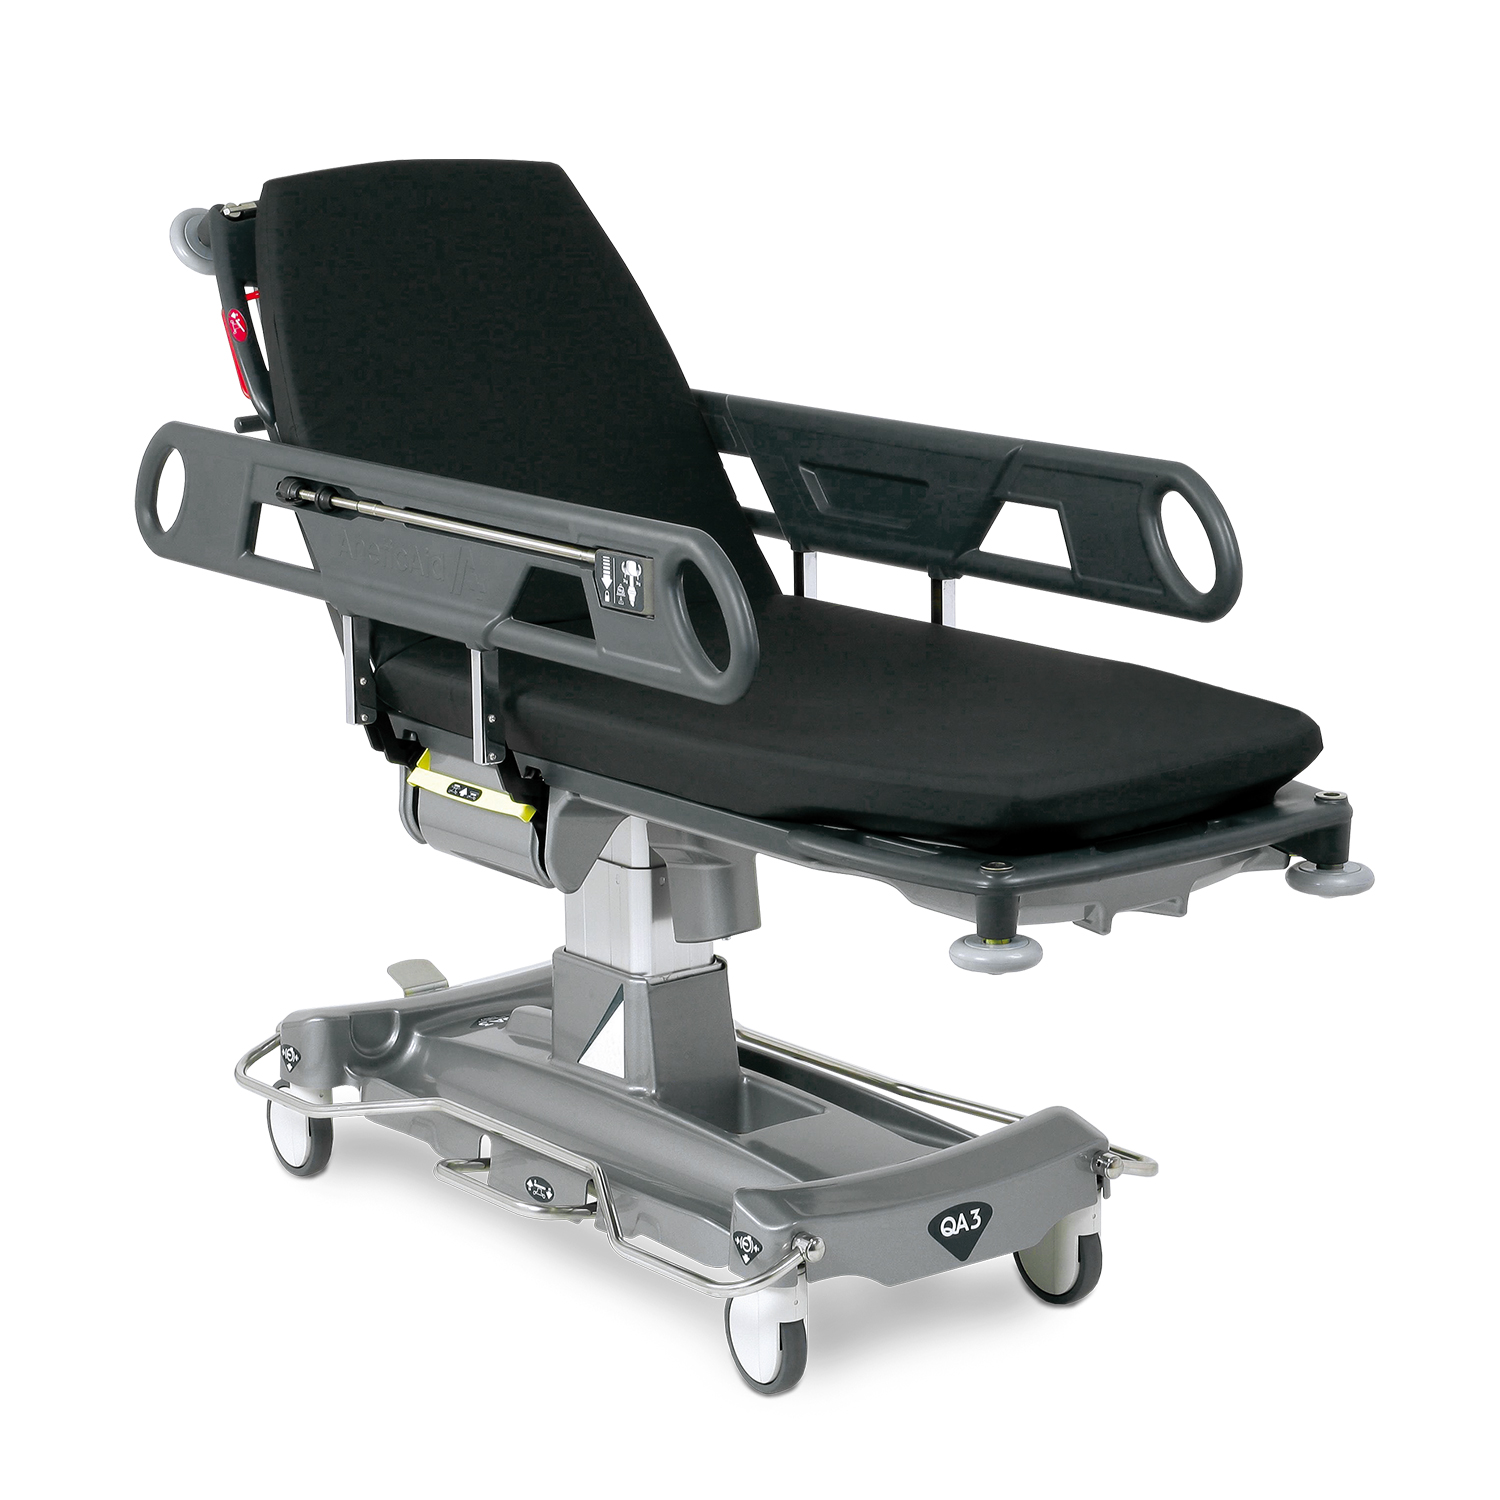 Stretcher Chair Steris Hausted Apc Stretcher Chair